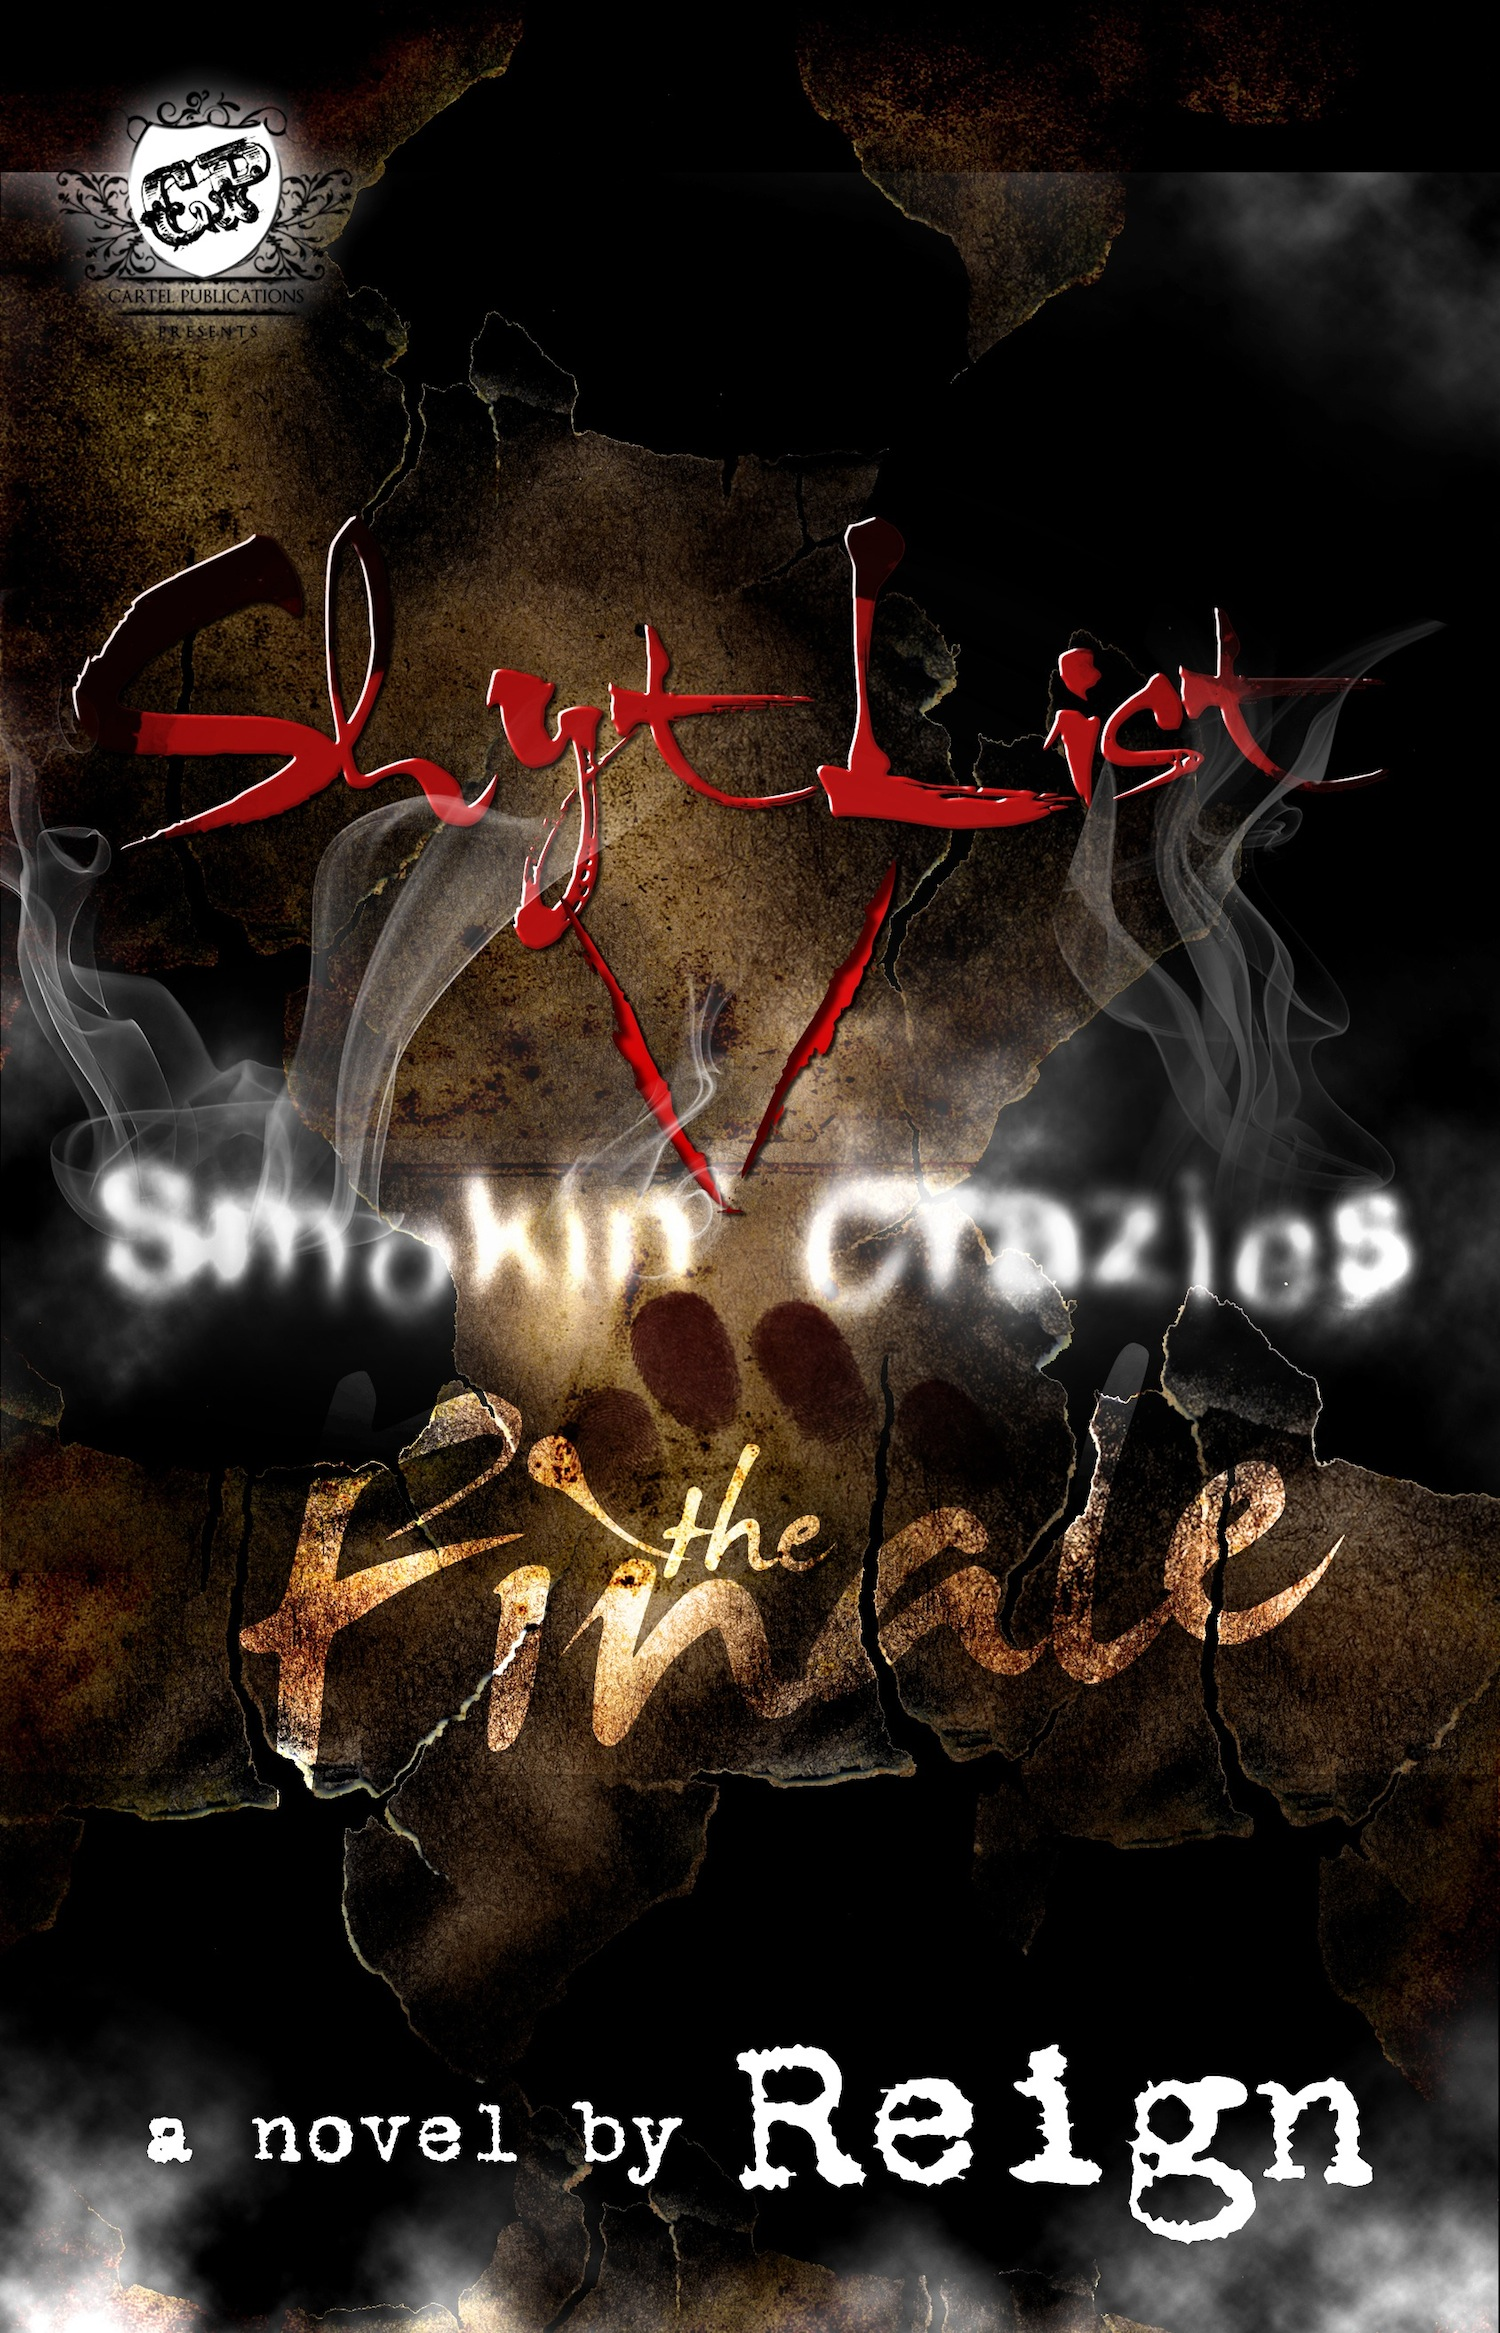 Shyt List 5: Smokin' Crazies The Finale' (The Cartel Publications Presents)